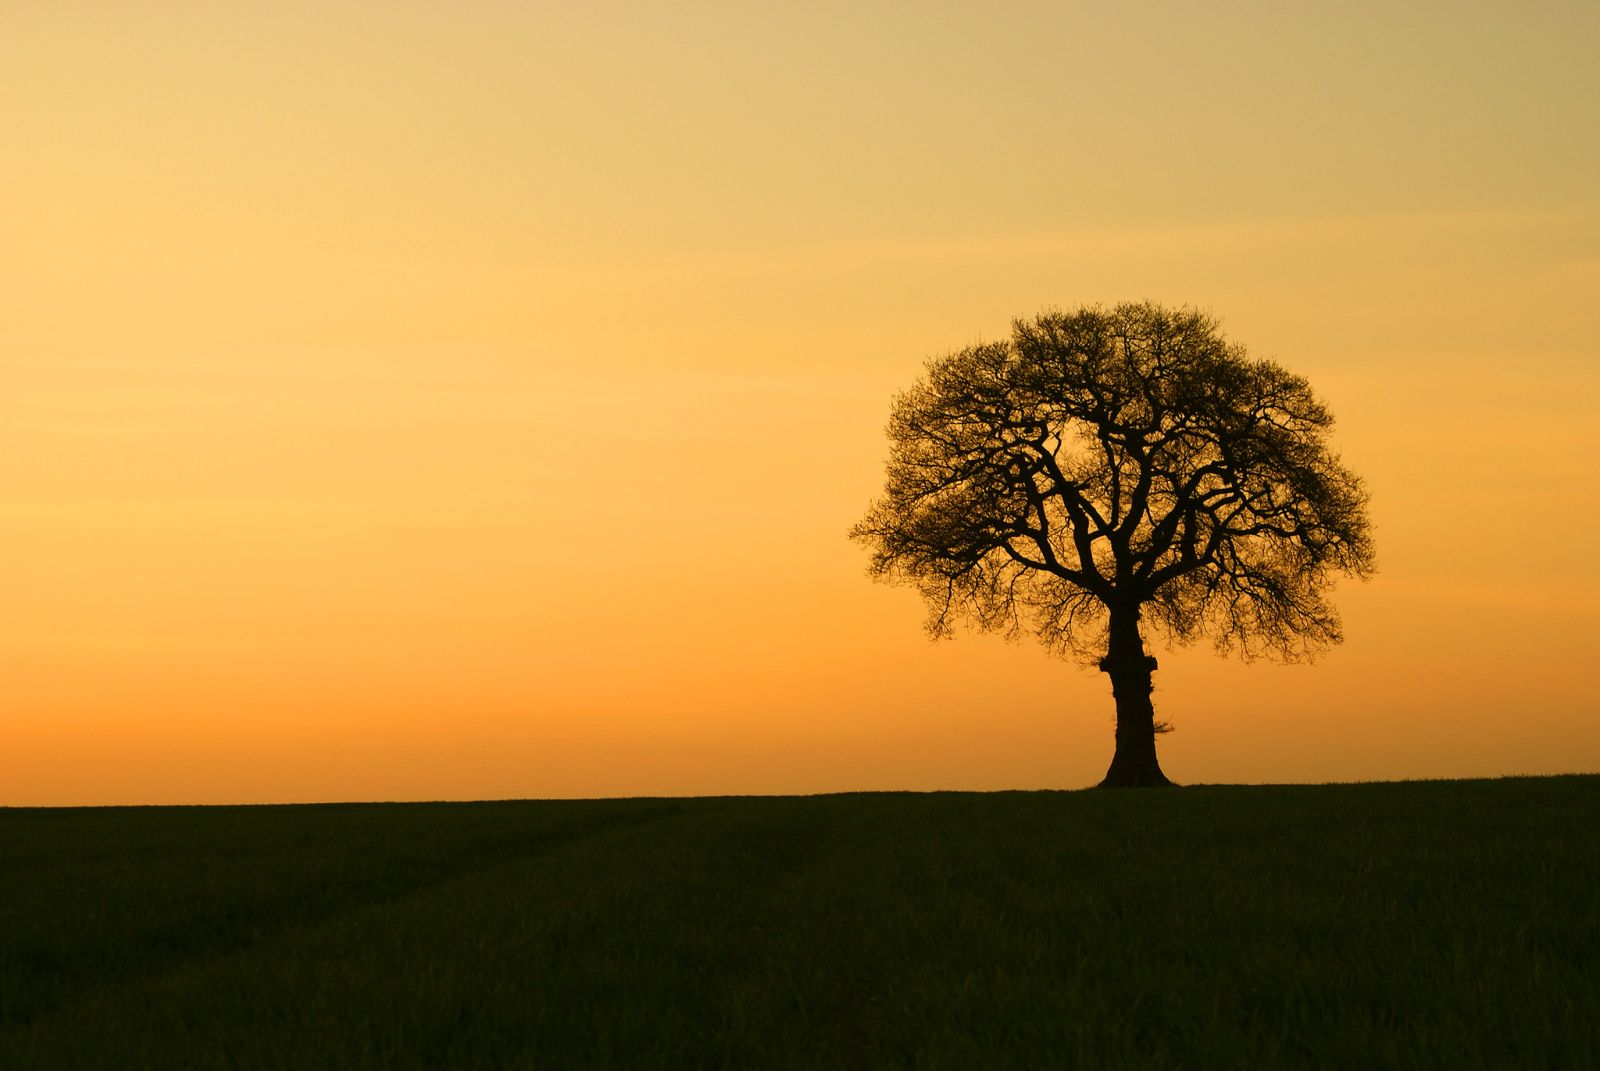 solitary tree photography sunset tom hills